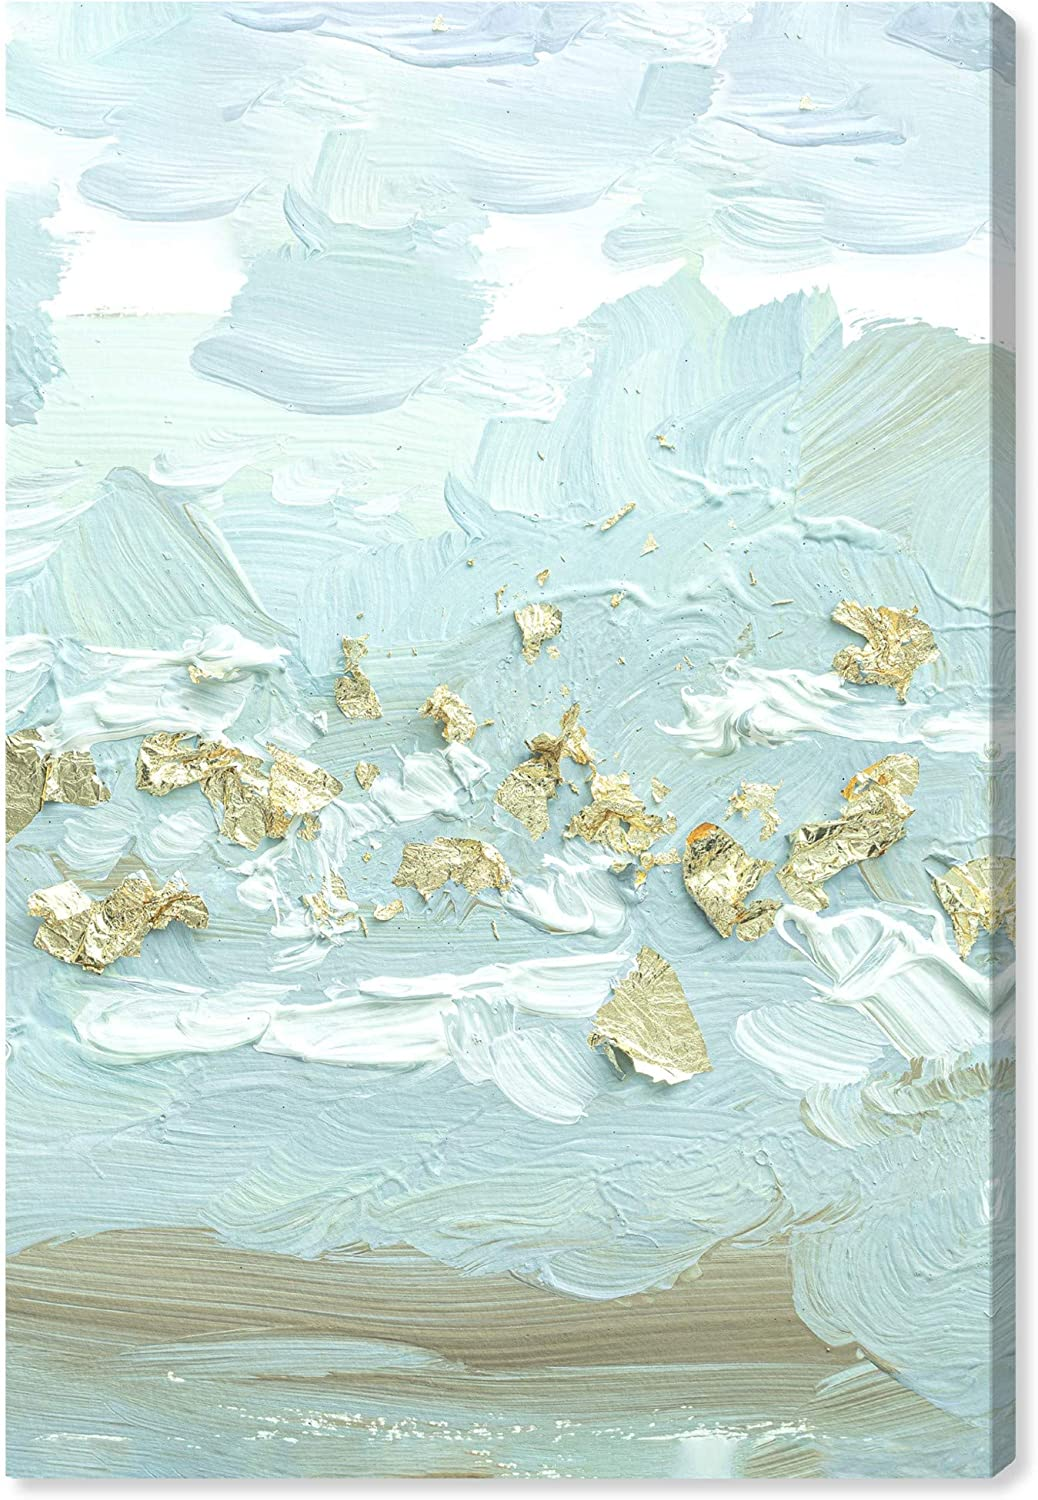 The Oliver Gal Artist 特売 即出荷 Co. Abstract Prints Wall Art 'Numa' Canvas